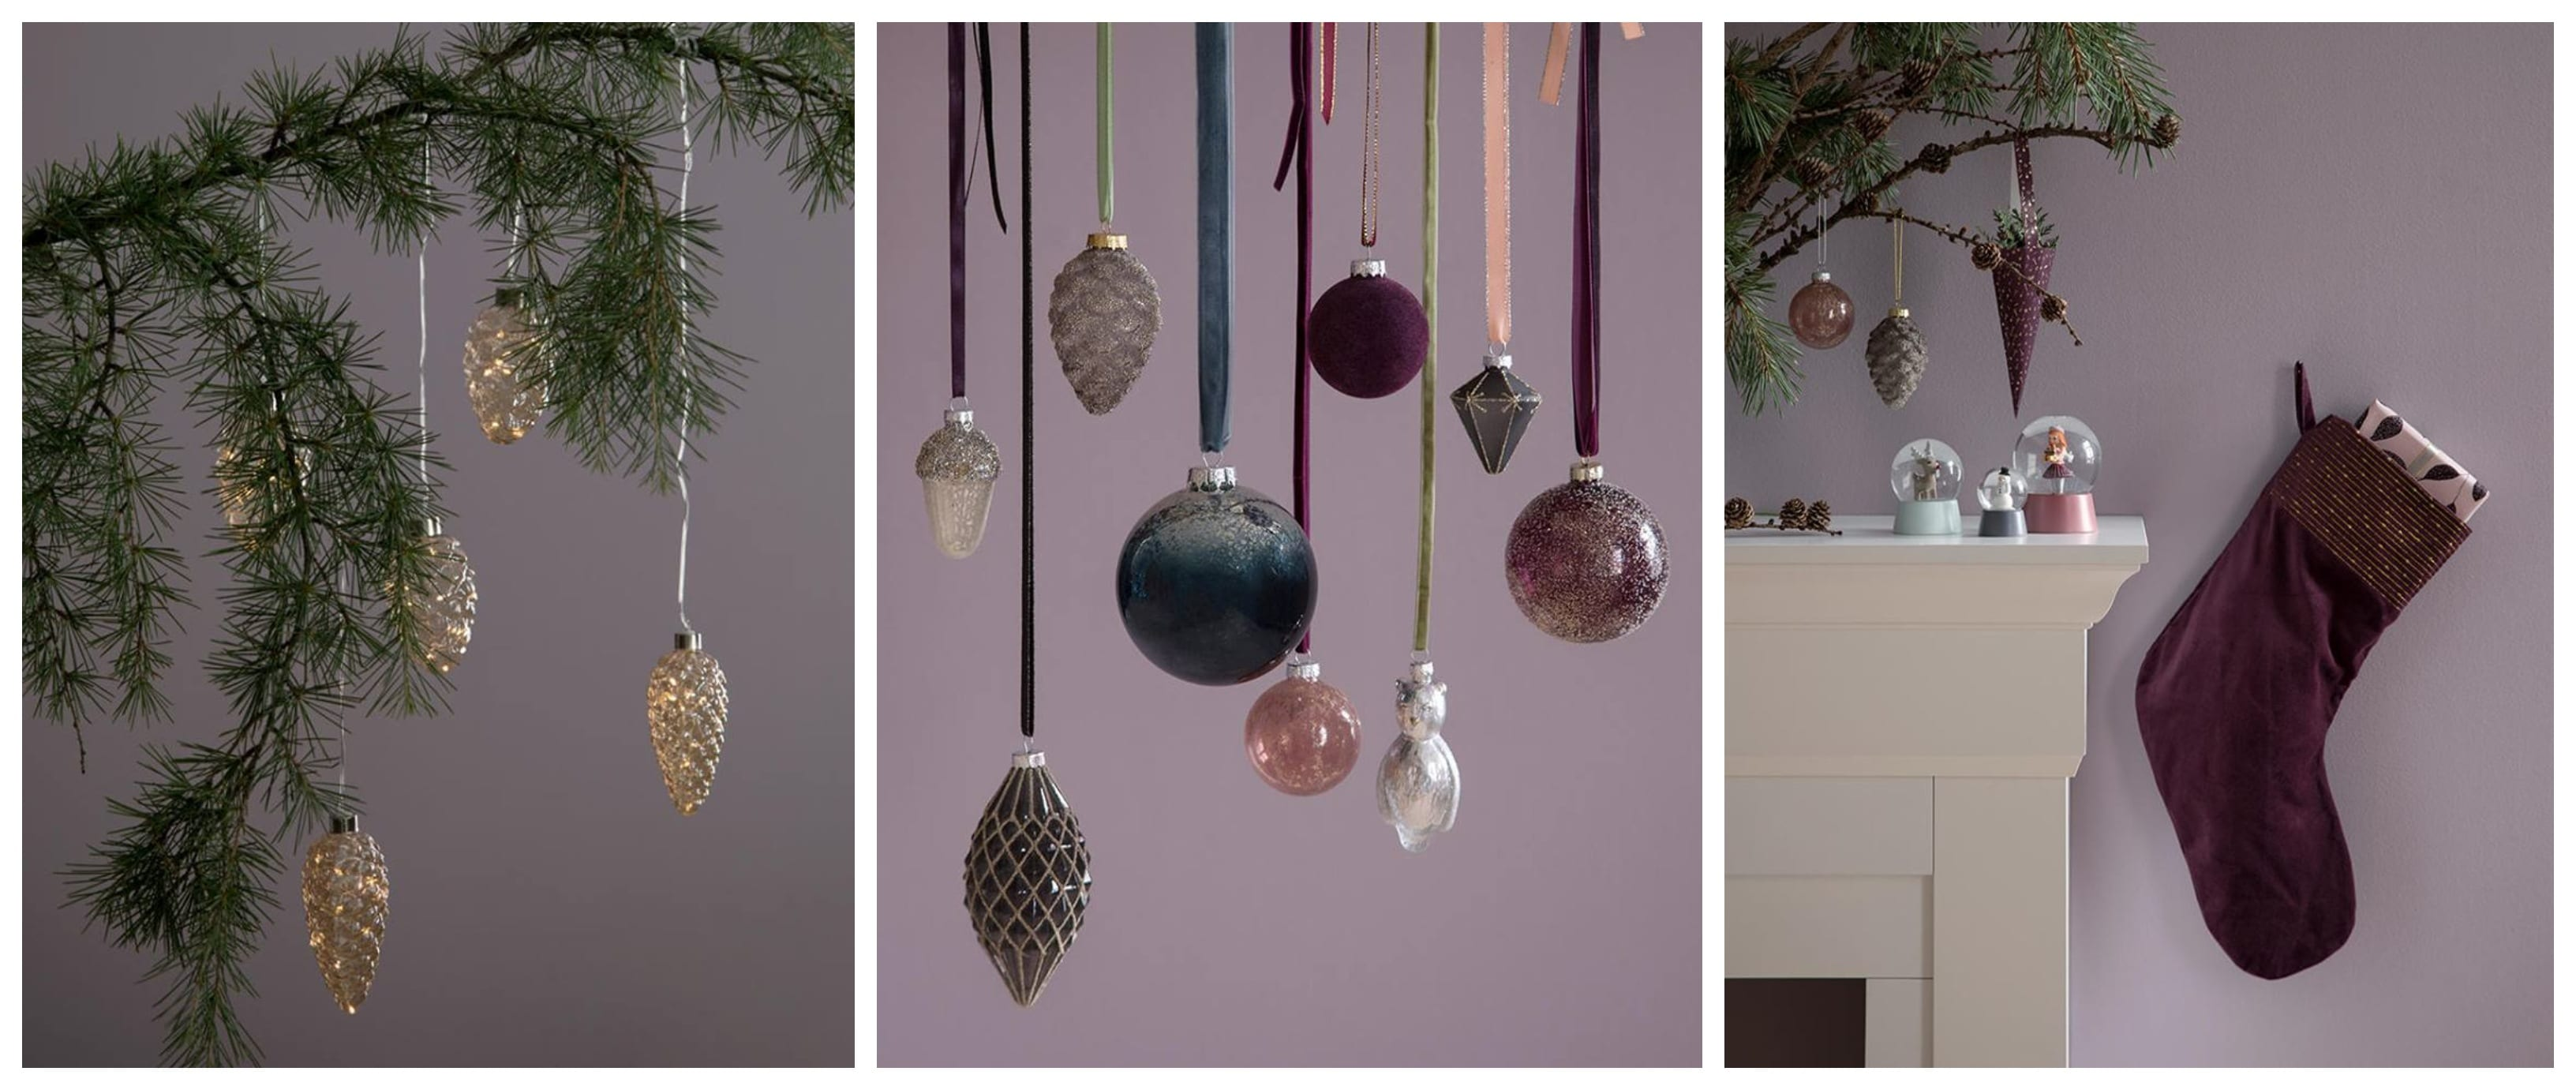 Christmas Tree LED Lights €3.44, Baubles €1.82 Each, Stocking €9.68